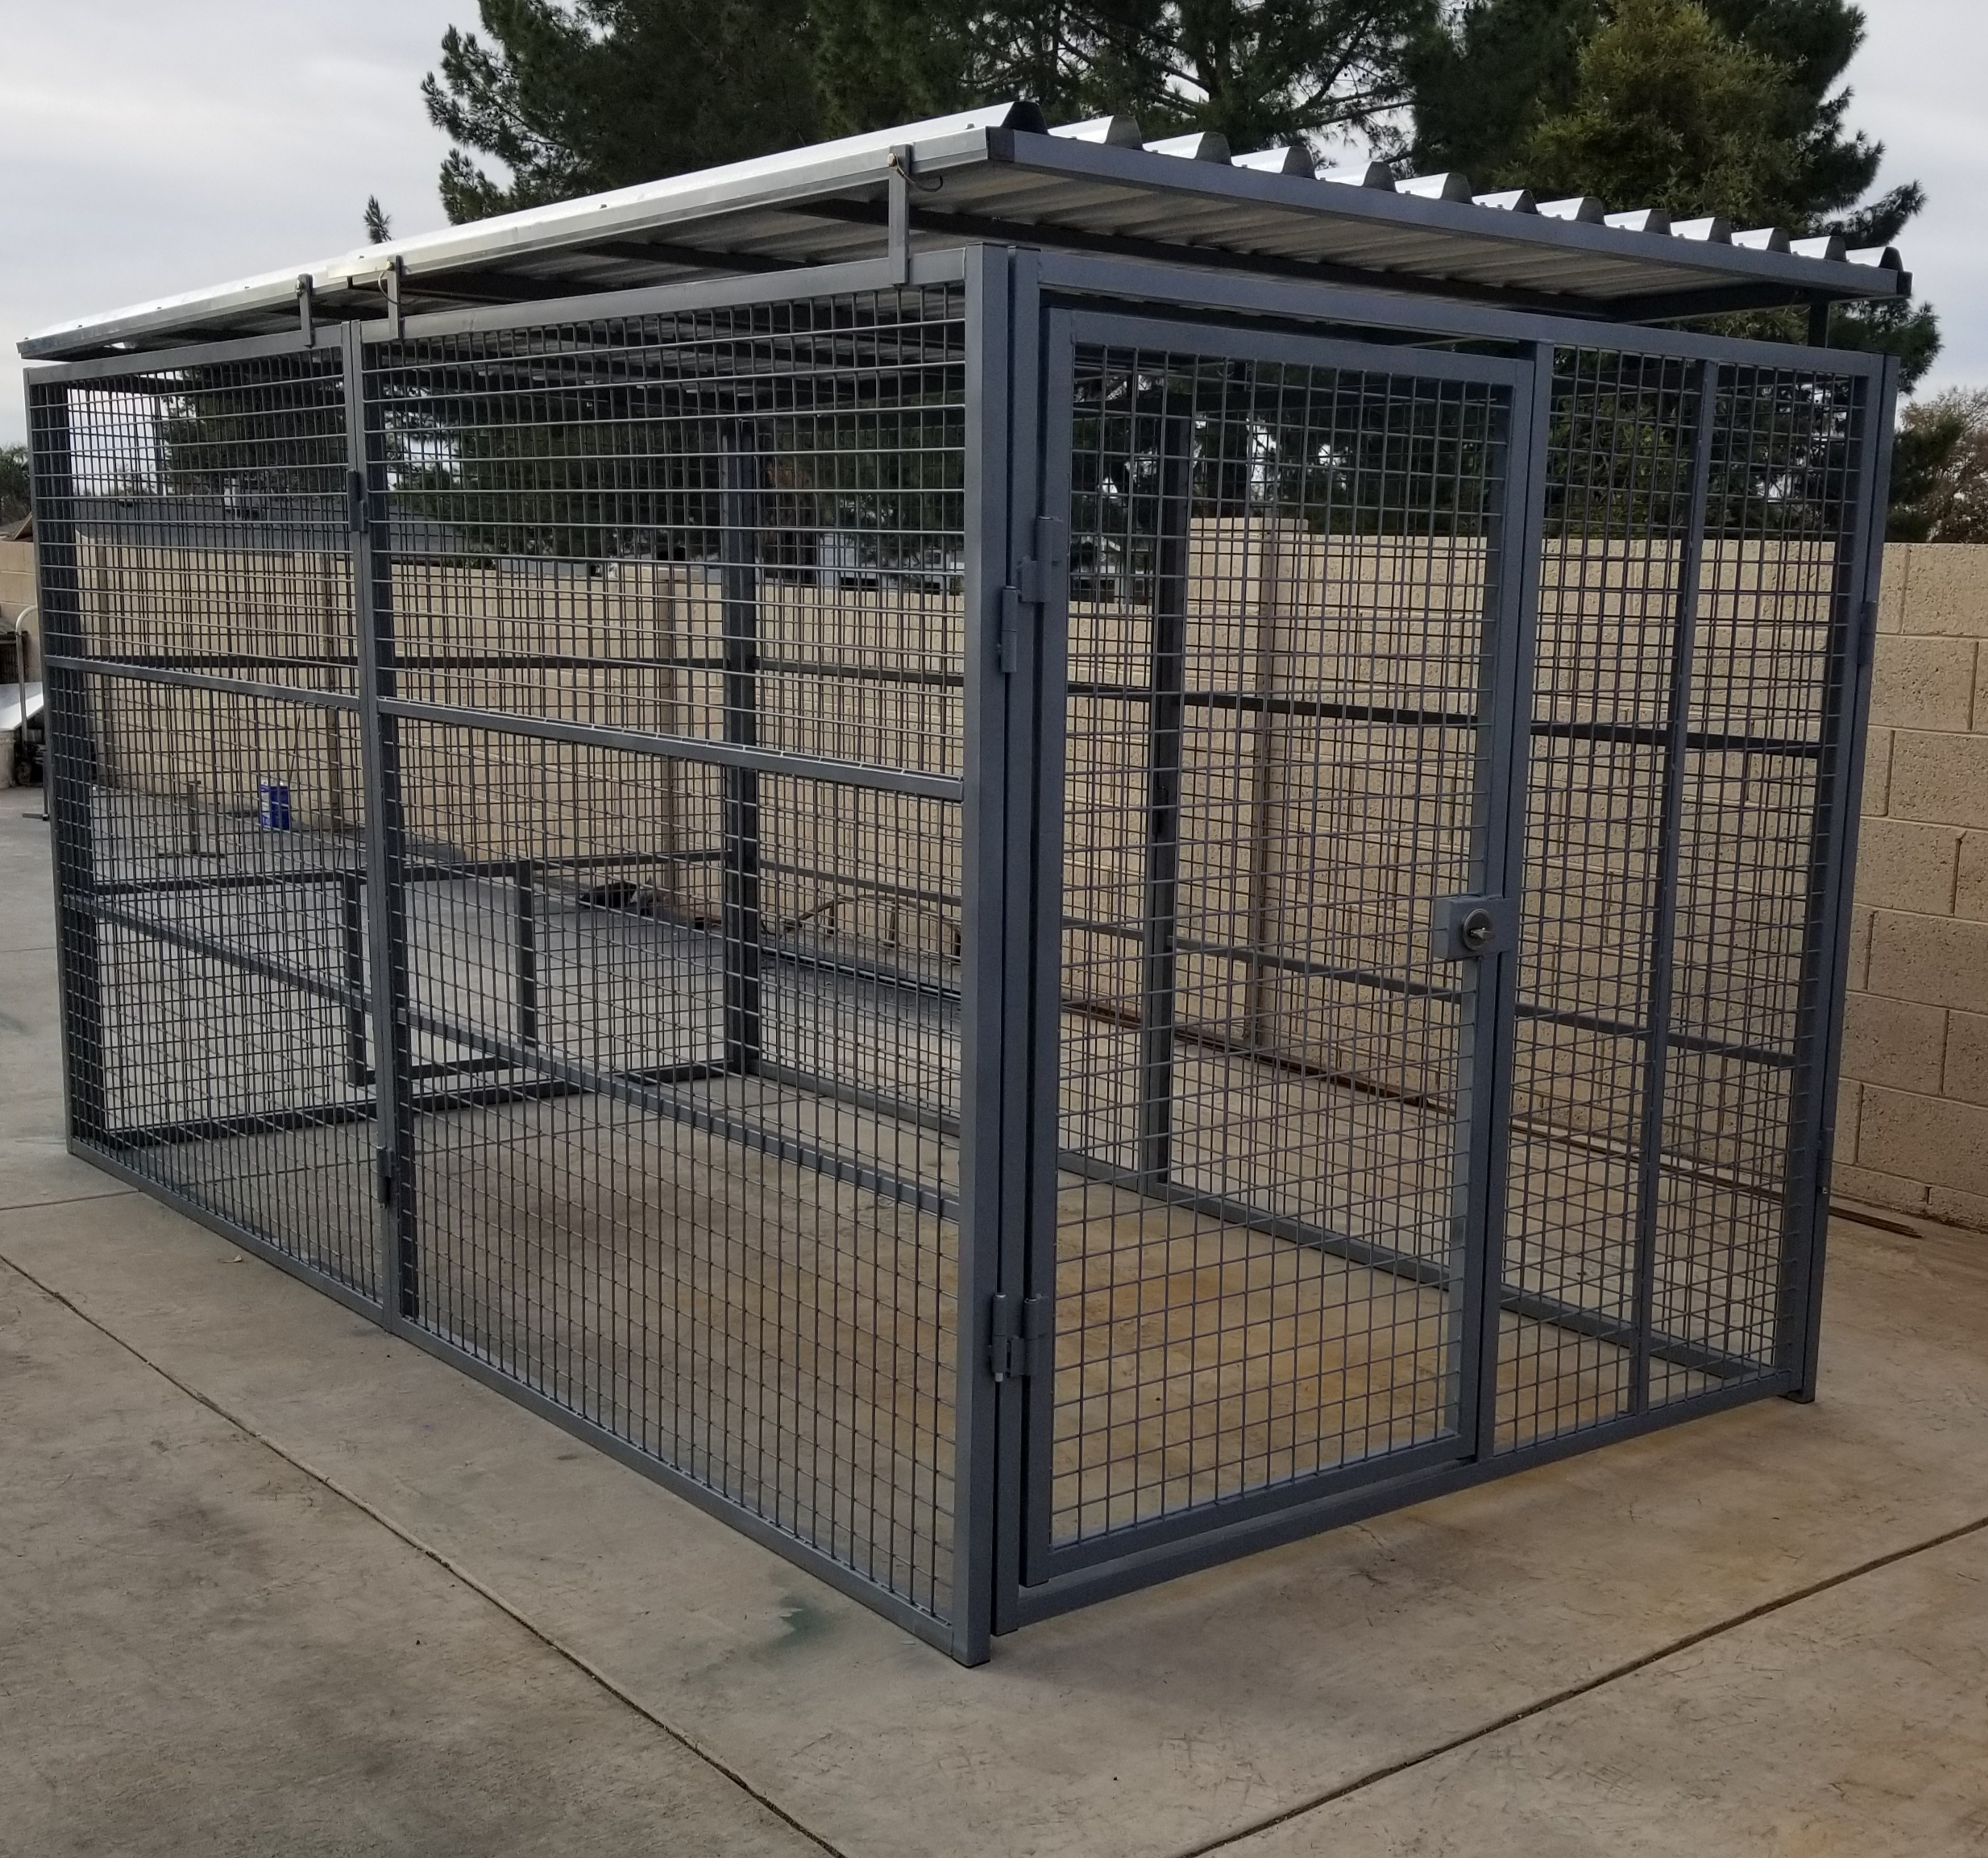 roof-single-dog-run-xtreme-dog-kennels-from-carrymydog.com